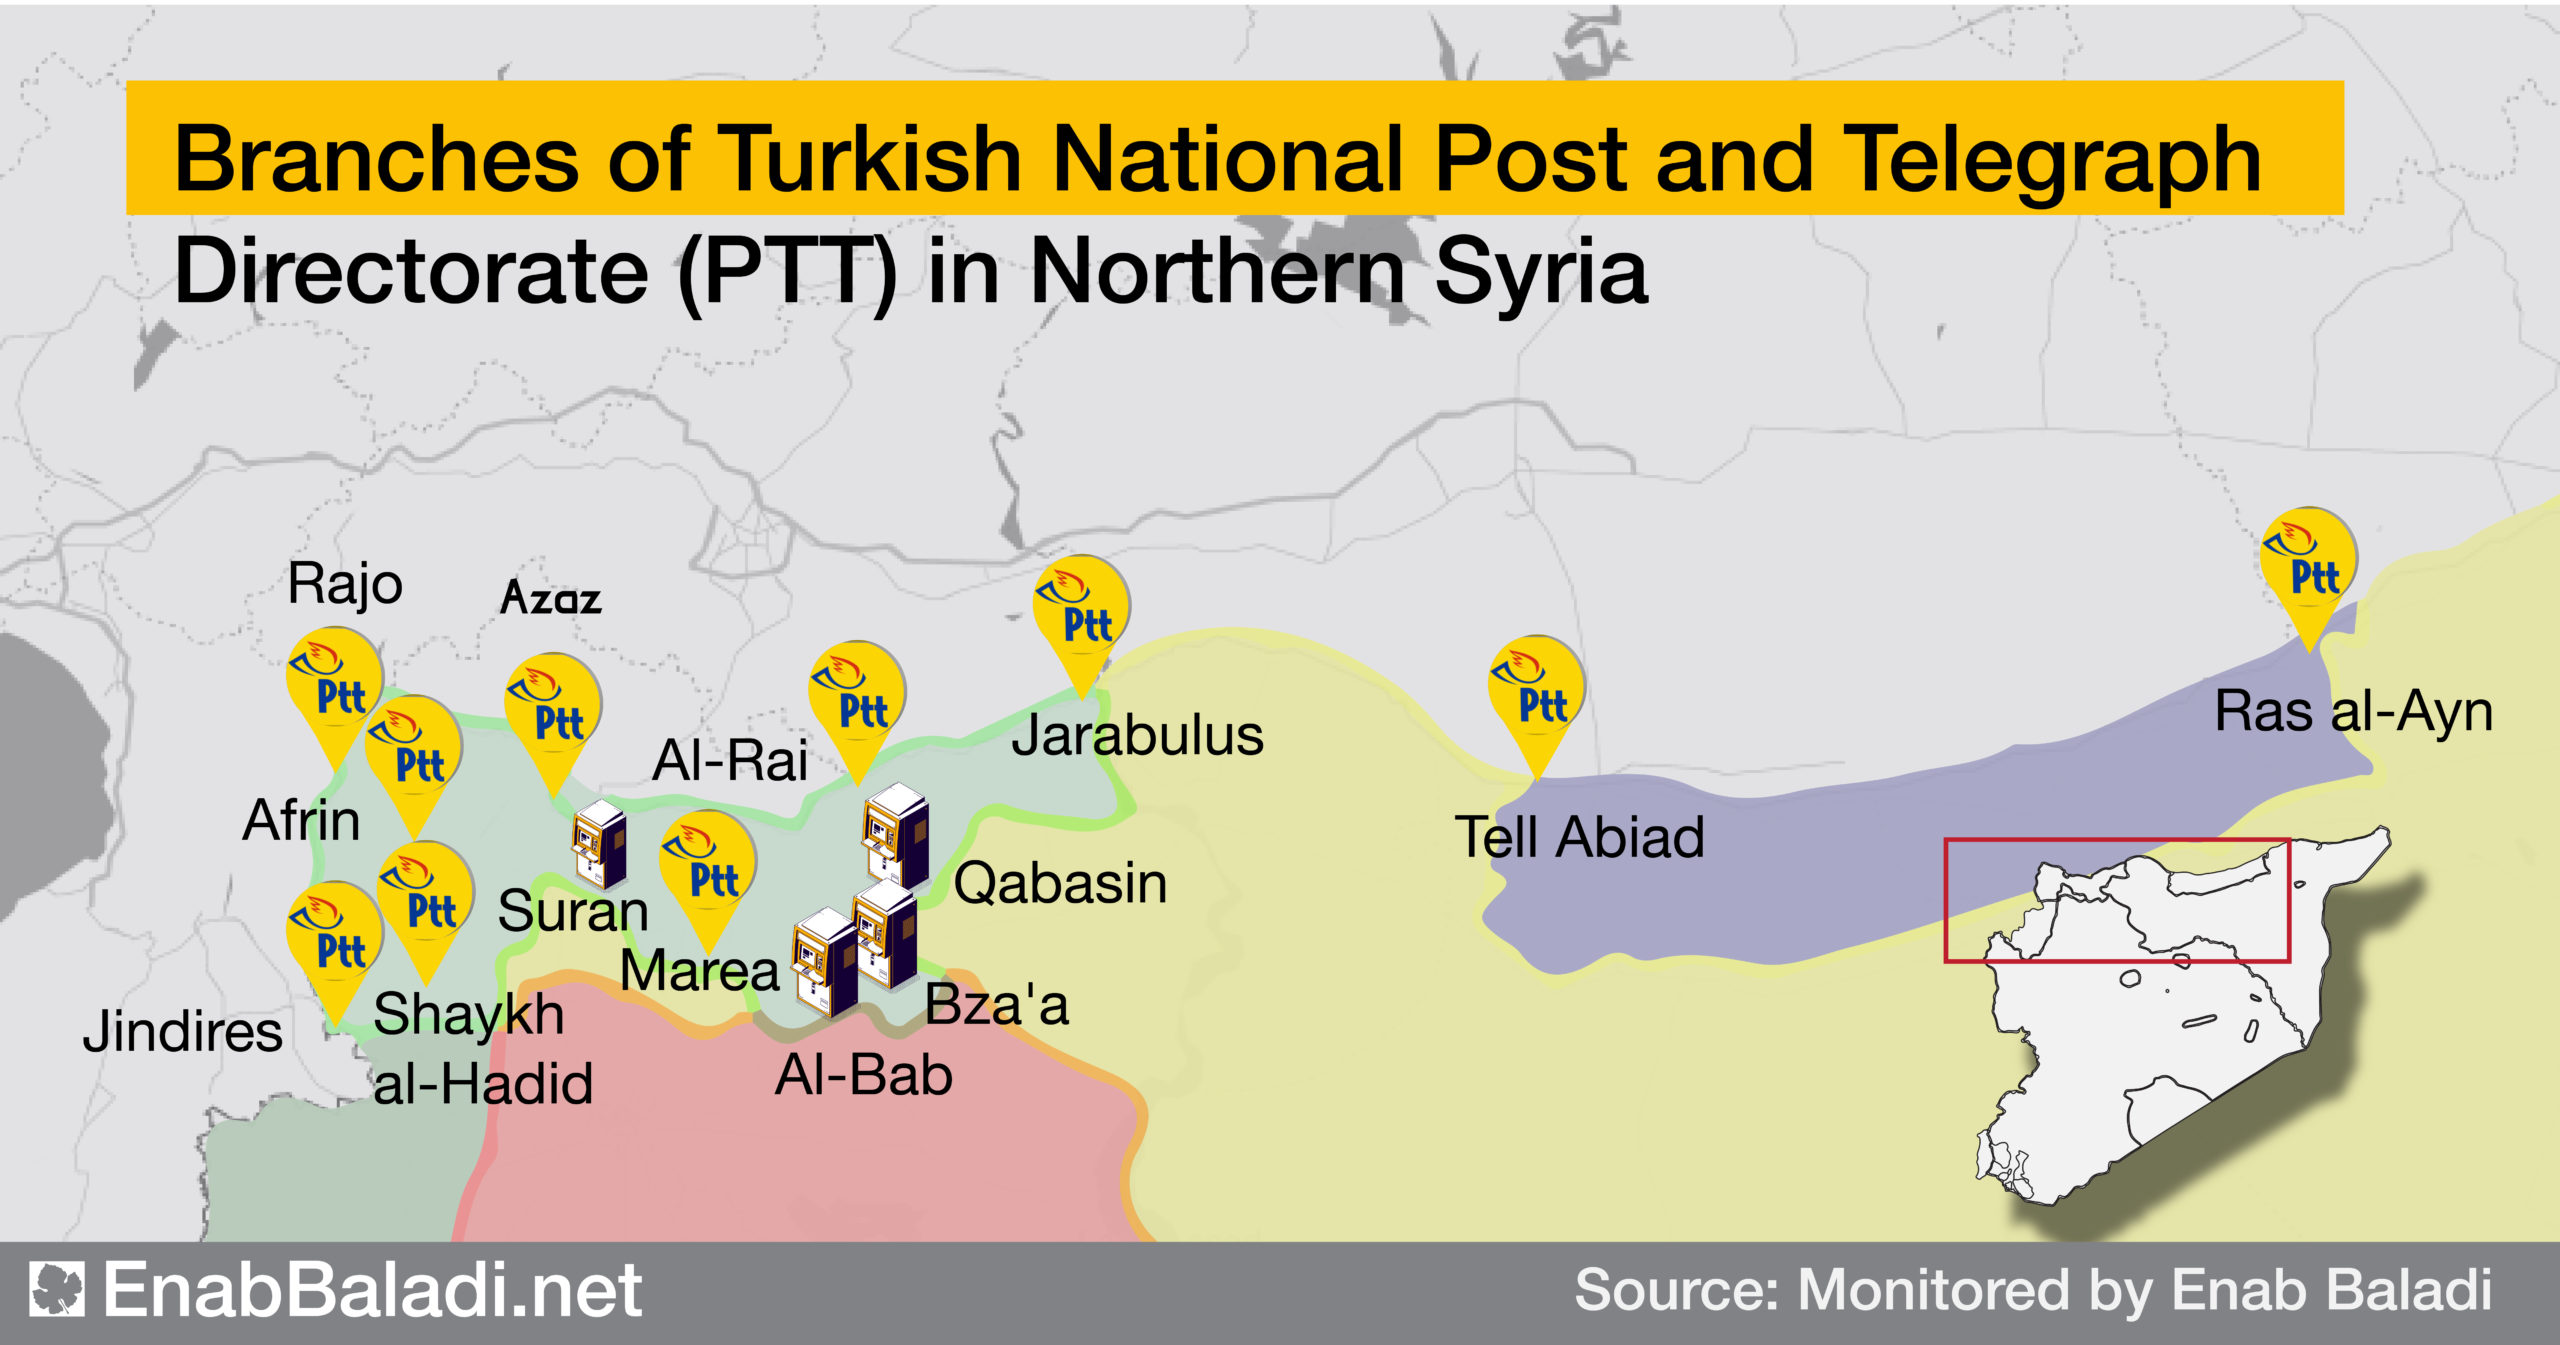 PTT branches across northern Syria